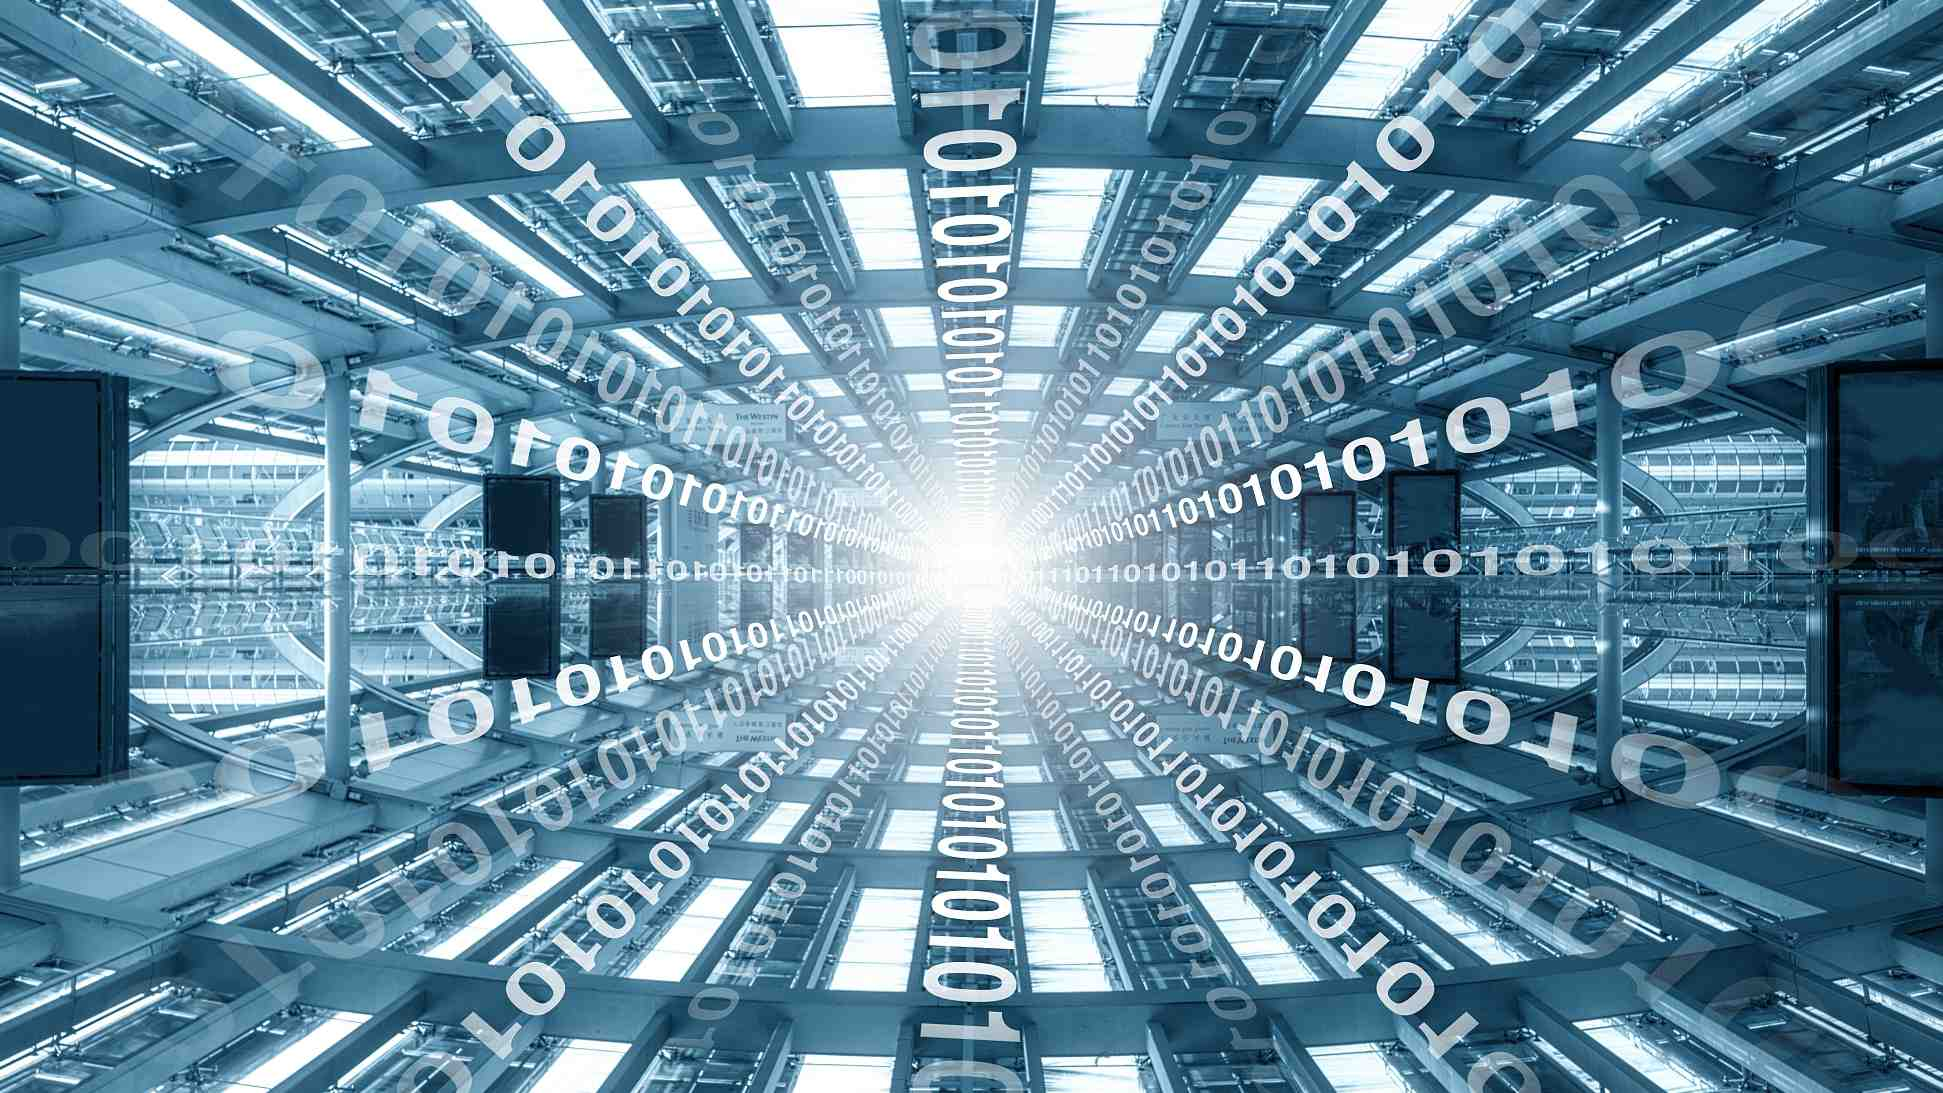 Xi sends congratulatory letter to the China International Big Data Industry Expo